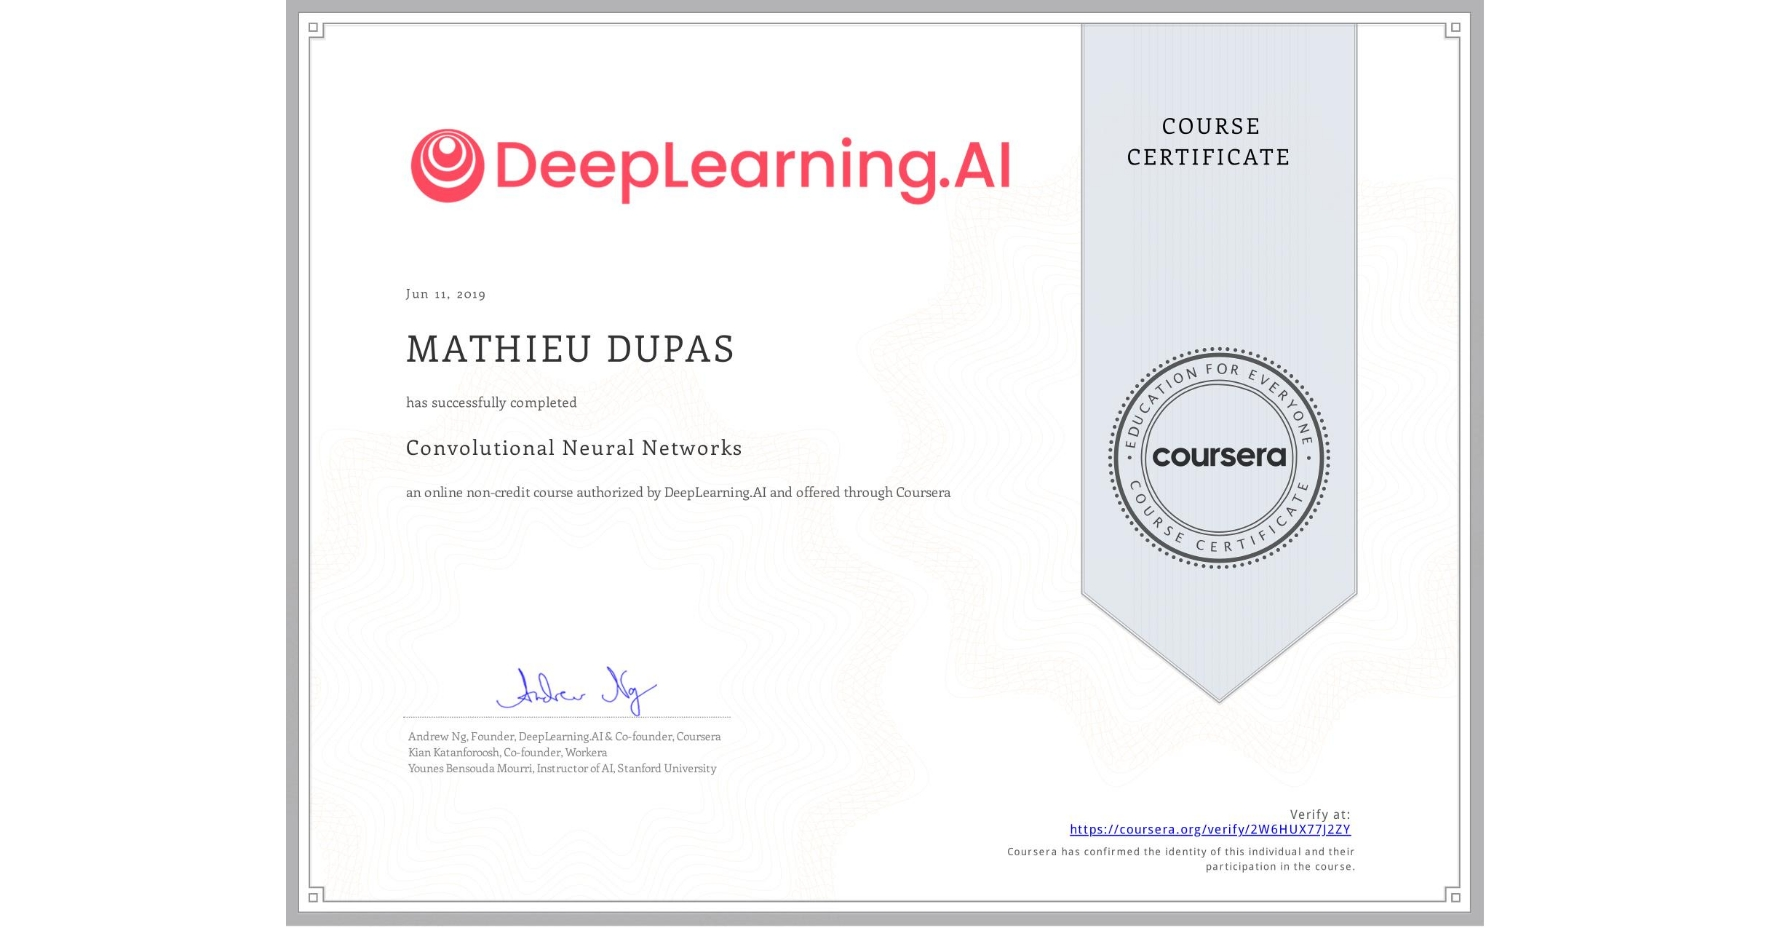 View certificate for MATHIEU DUPAS, Convolutional Neural Networks, an online non-credit course authorized by DeepLearning.AI and offered through Coursera